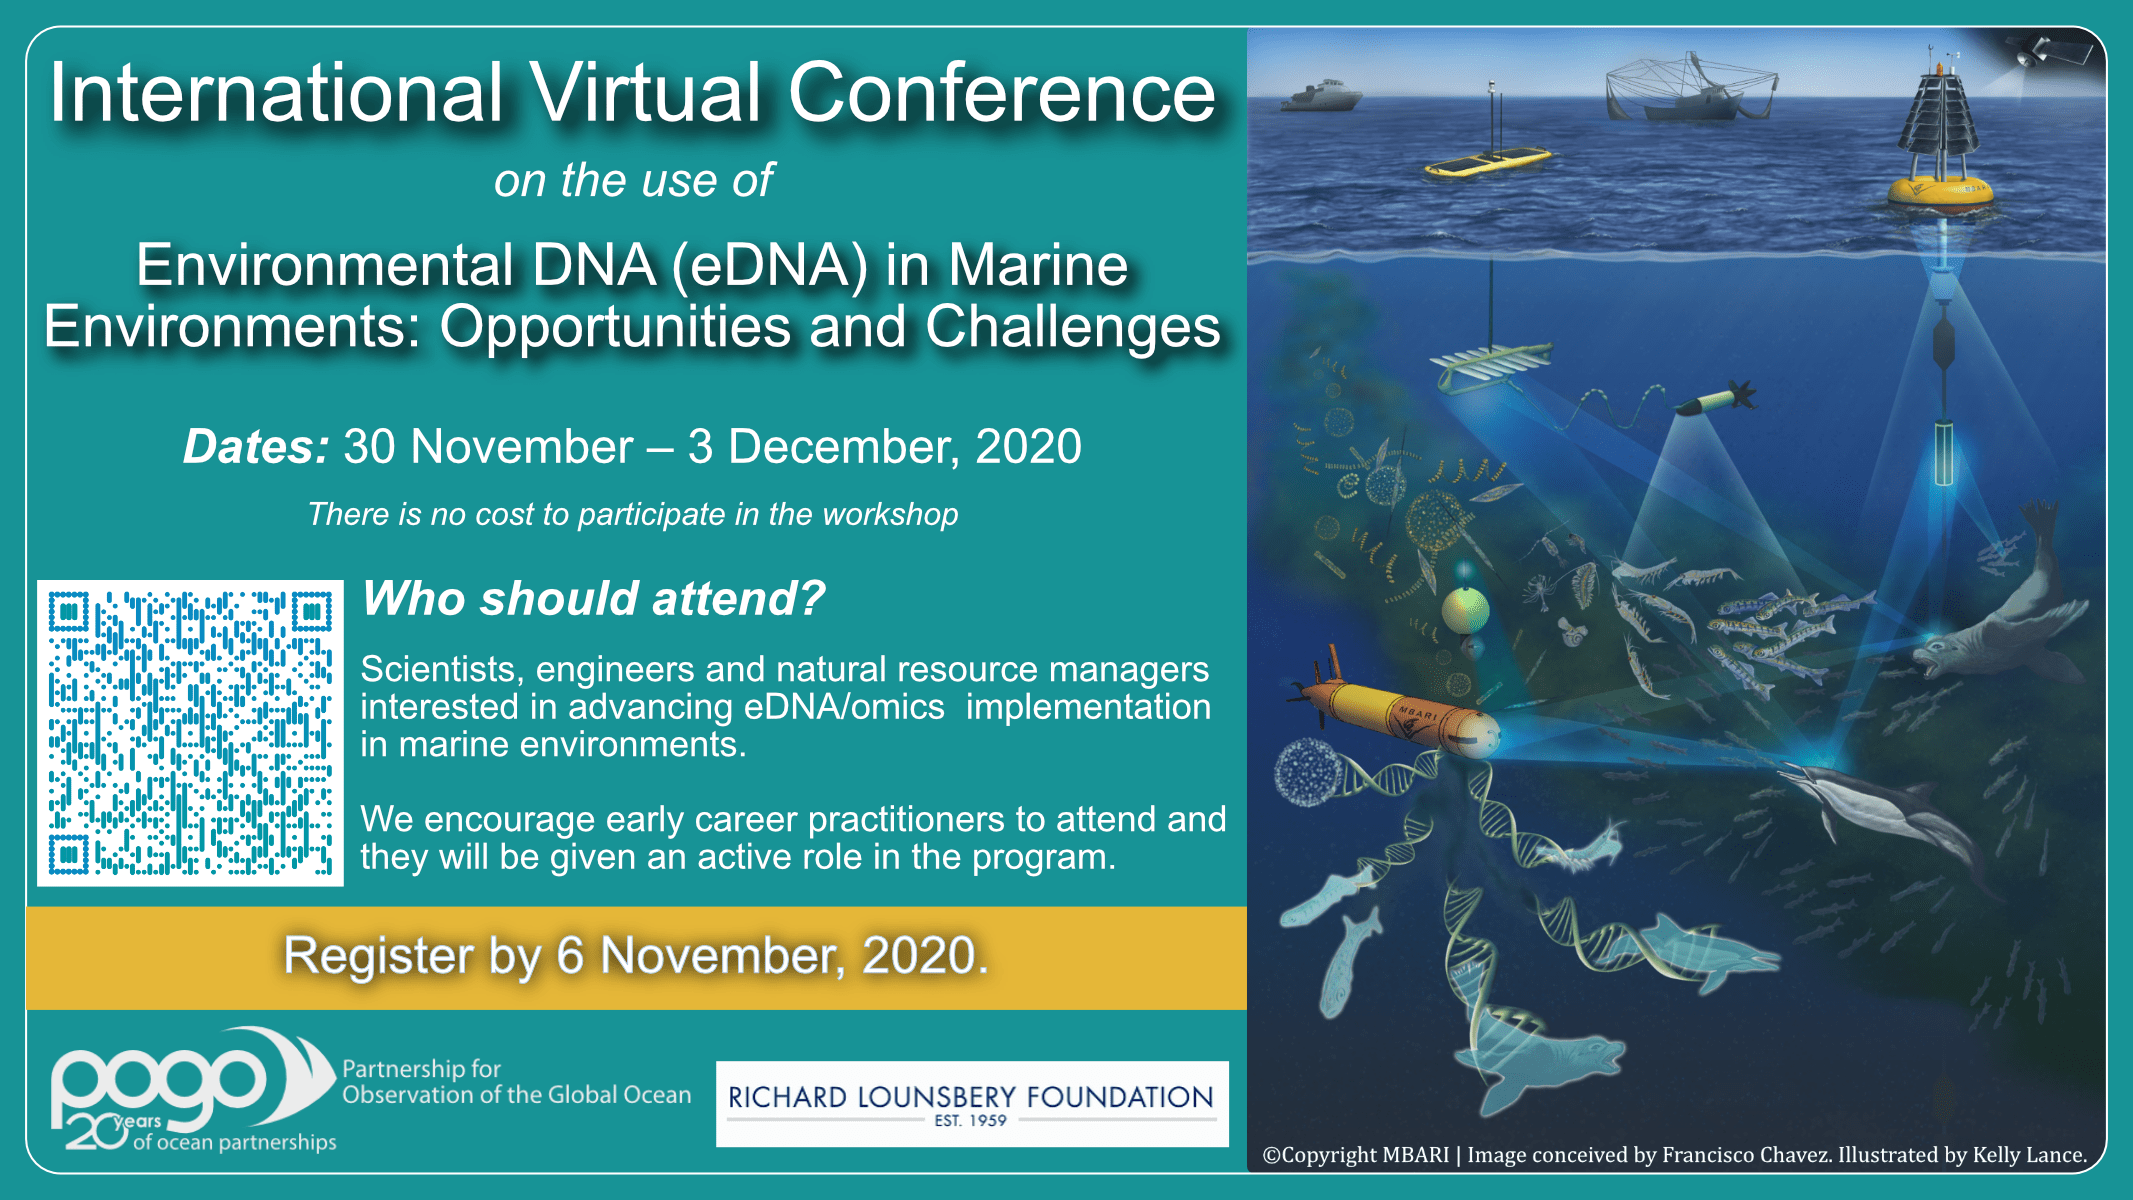 International Virtual Conference on the use of Environmental DNA (eDNA) in Marine Environments: Opportunities and Challenges